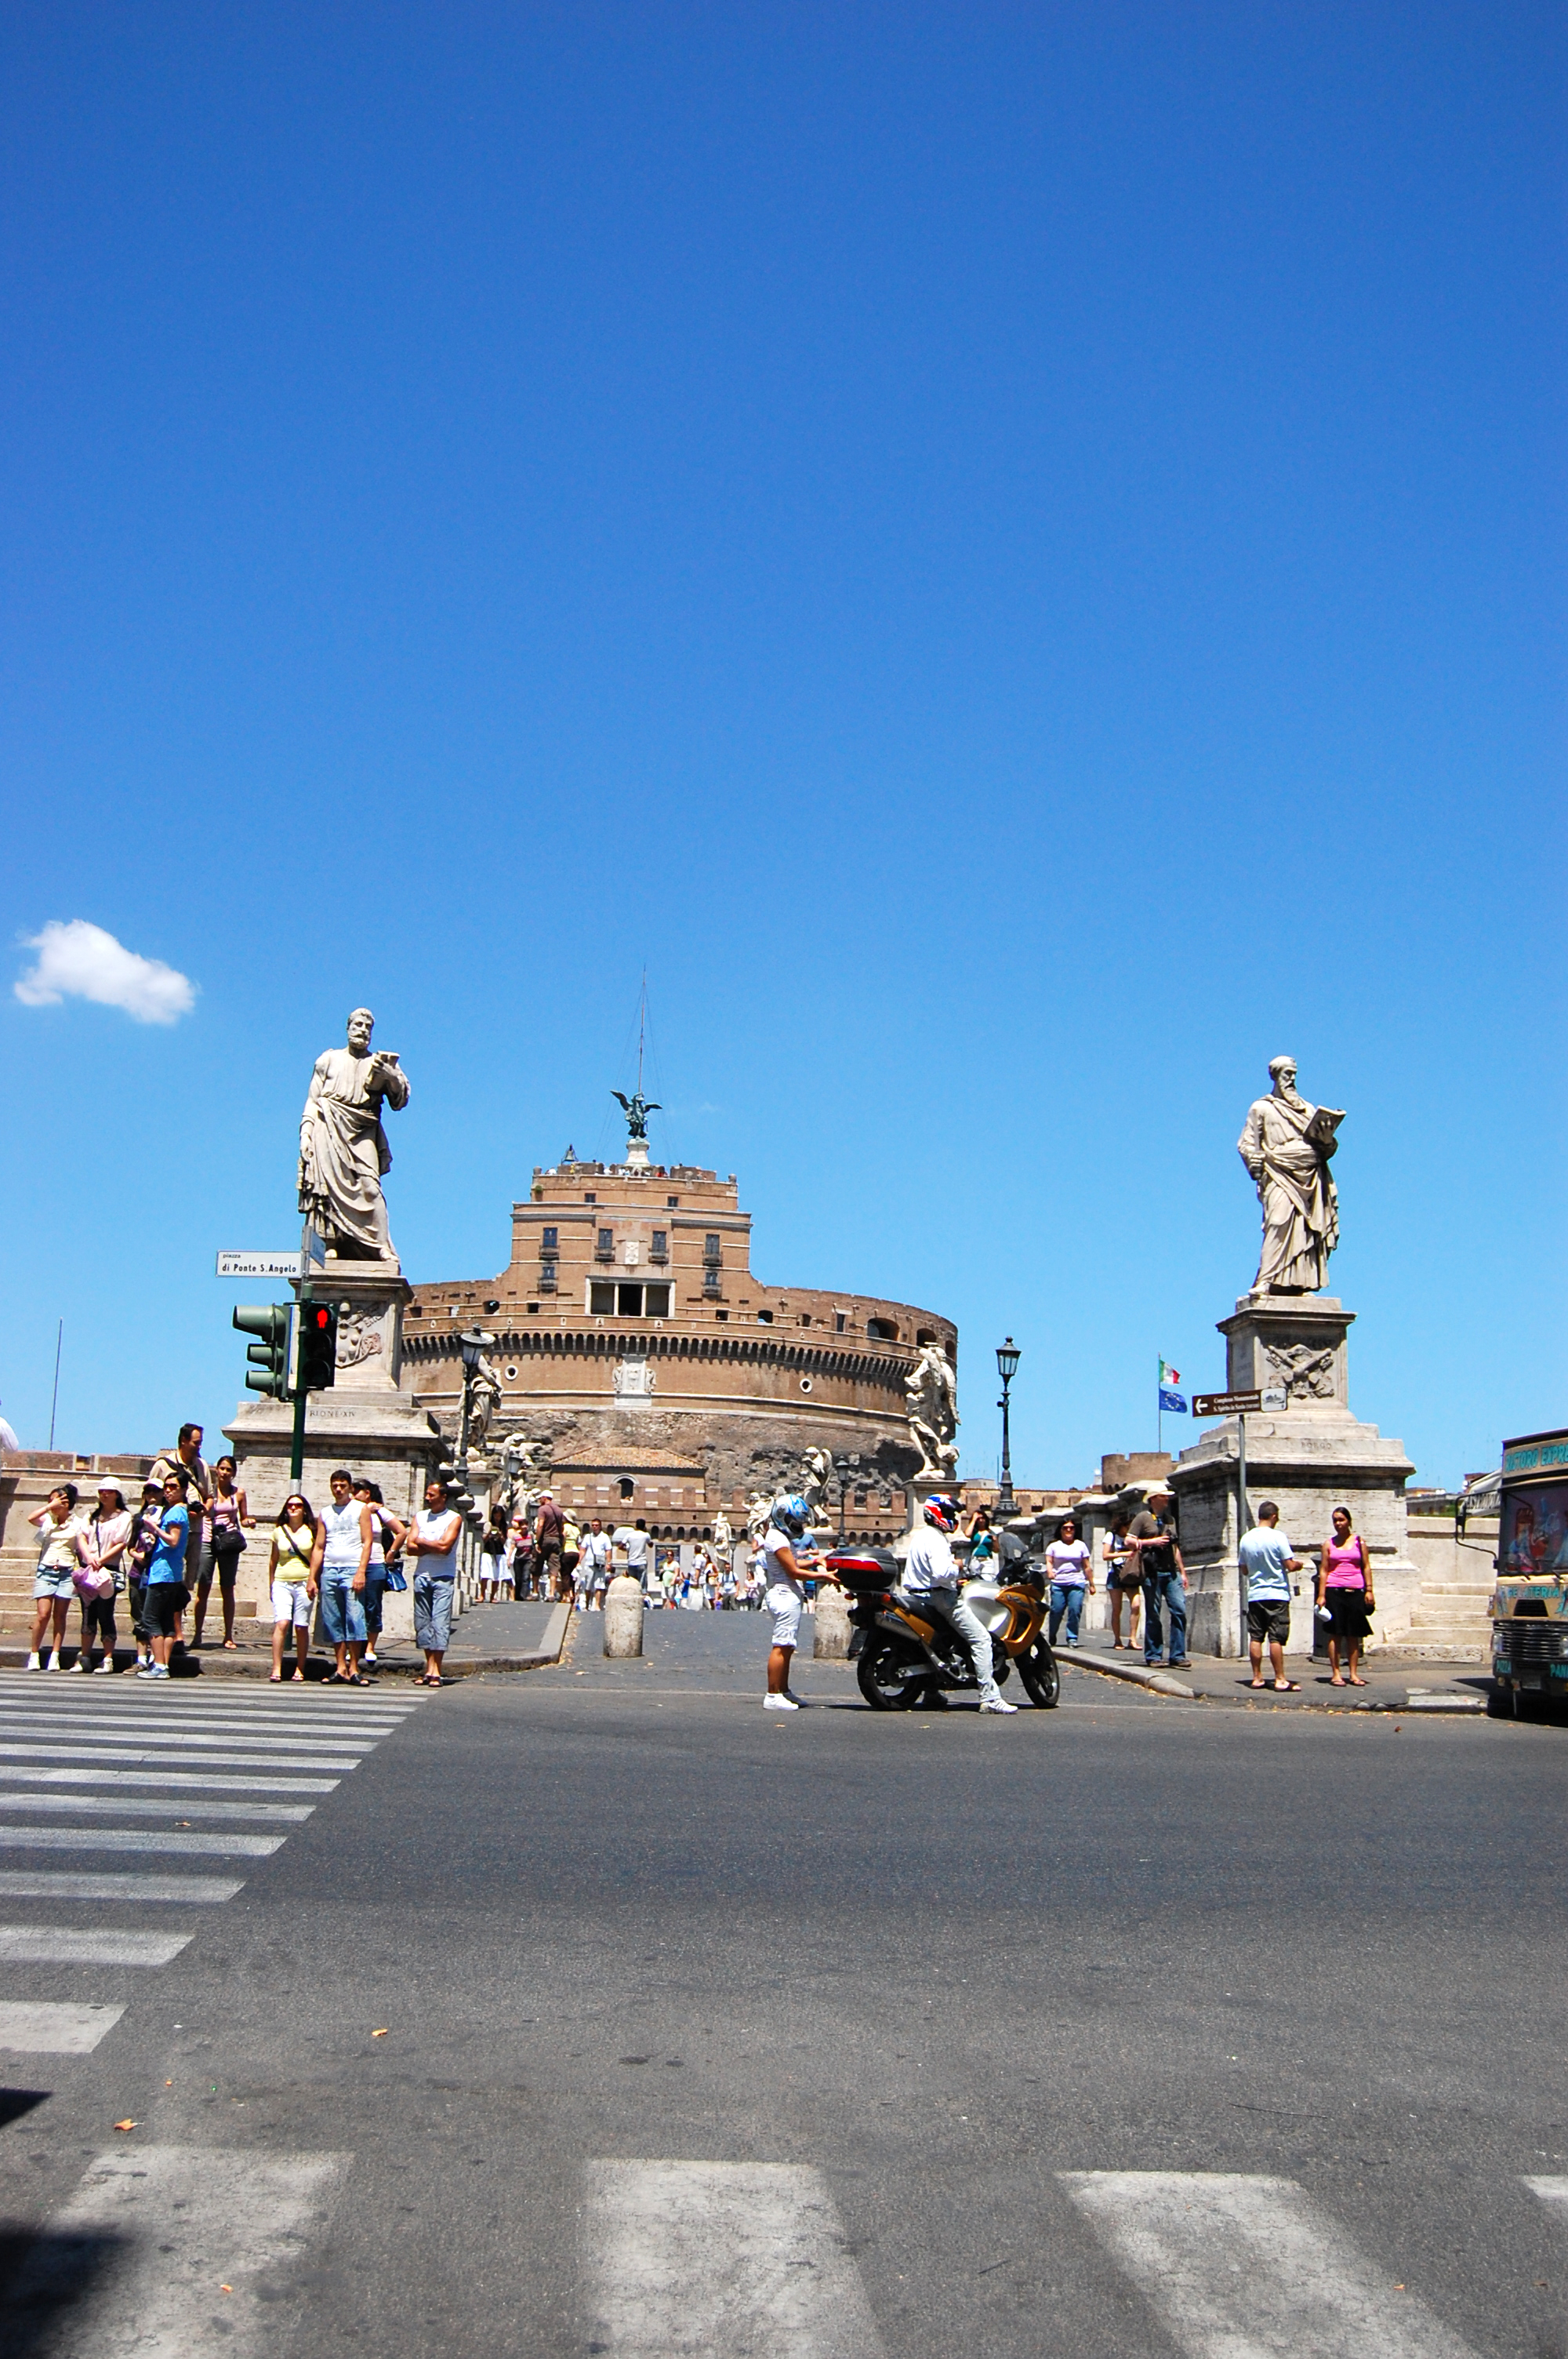 Castel St. Angelo, Rome, Italy